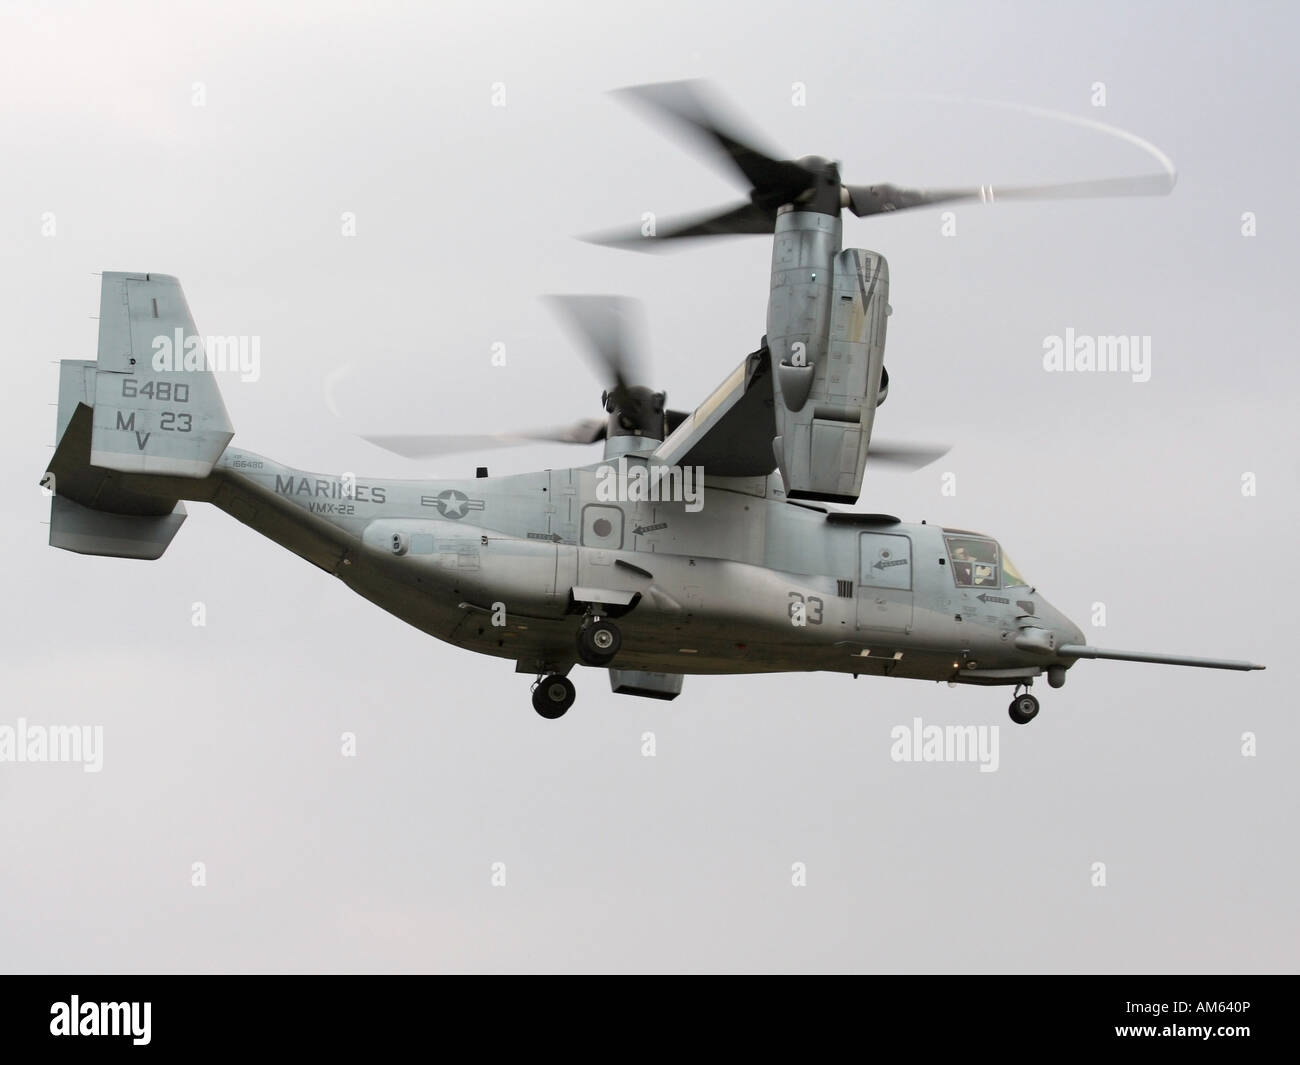 Bell-Boeing MV-22B Osprey tilt rotor aircraft of the US Marines in hover mode with engines rotated upwards - Stock Image